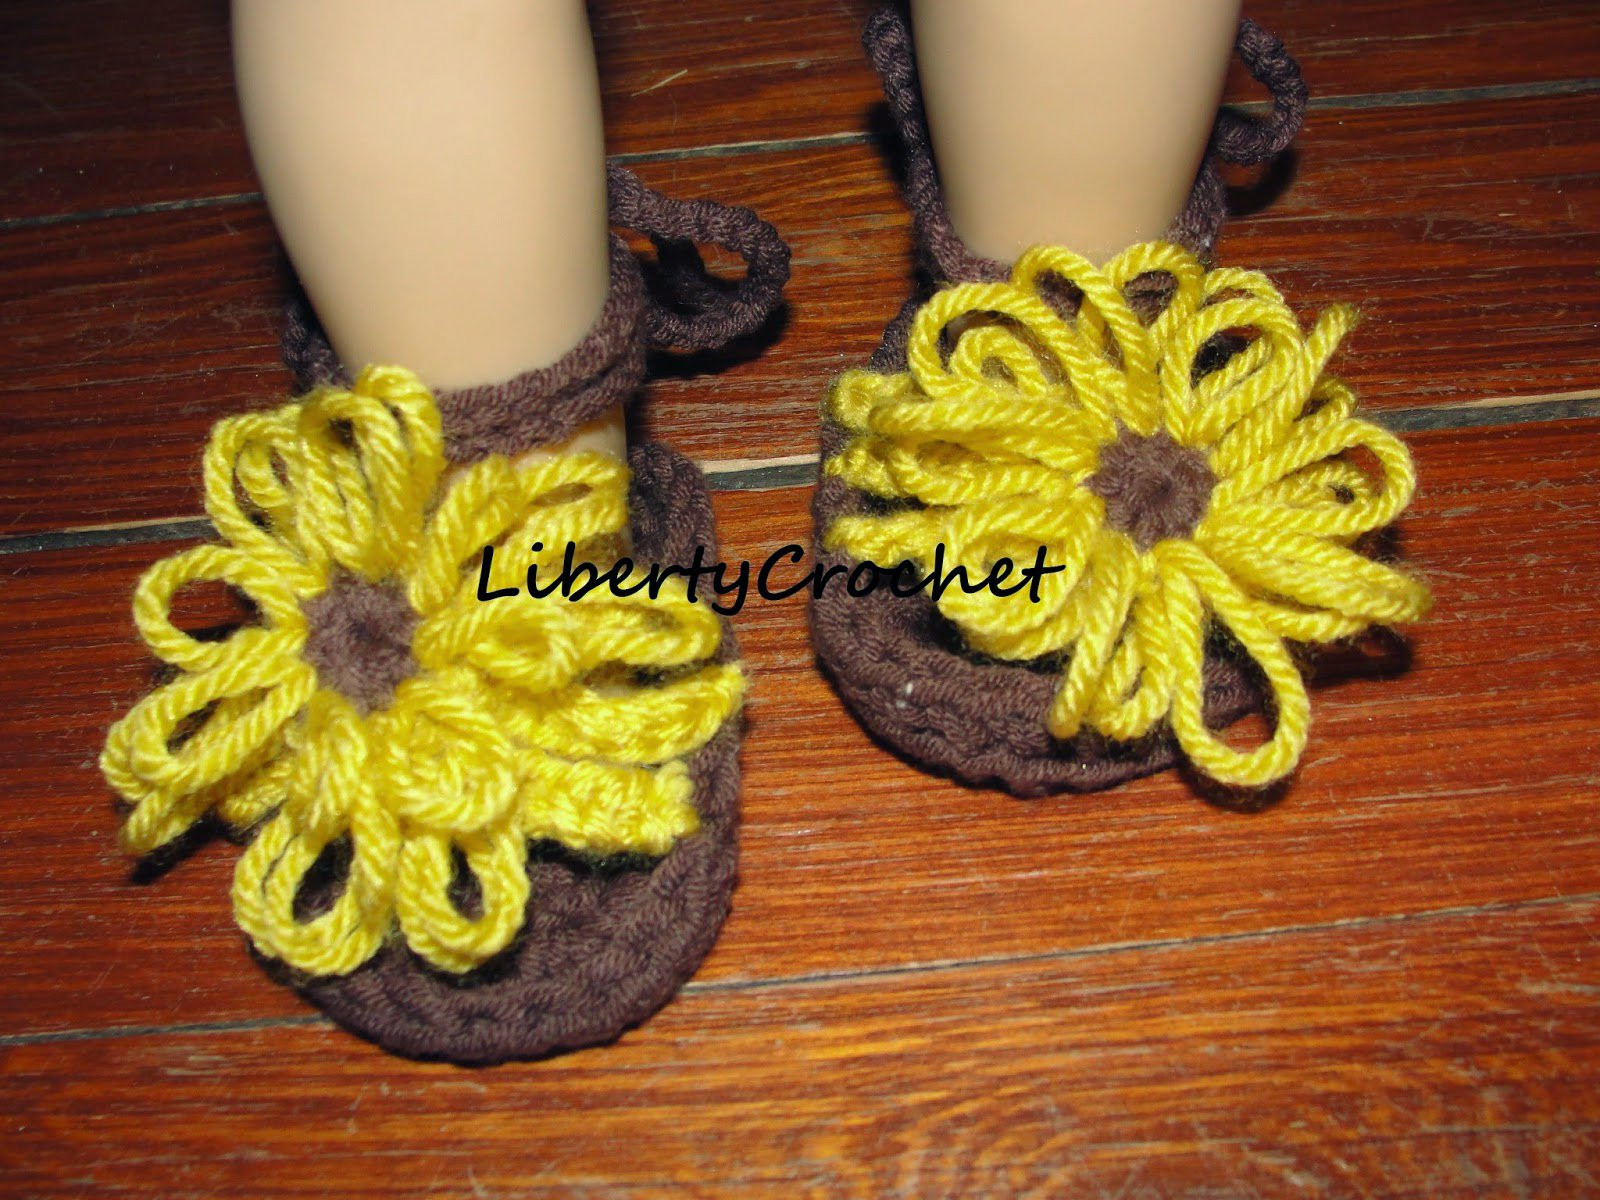 Crochet Baby Sandals Pattern Unique Crochet Baby Flip Flop Sandals with Patterns Of Perfect 43 Photos Crochet Baby Sandals Pattern